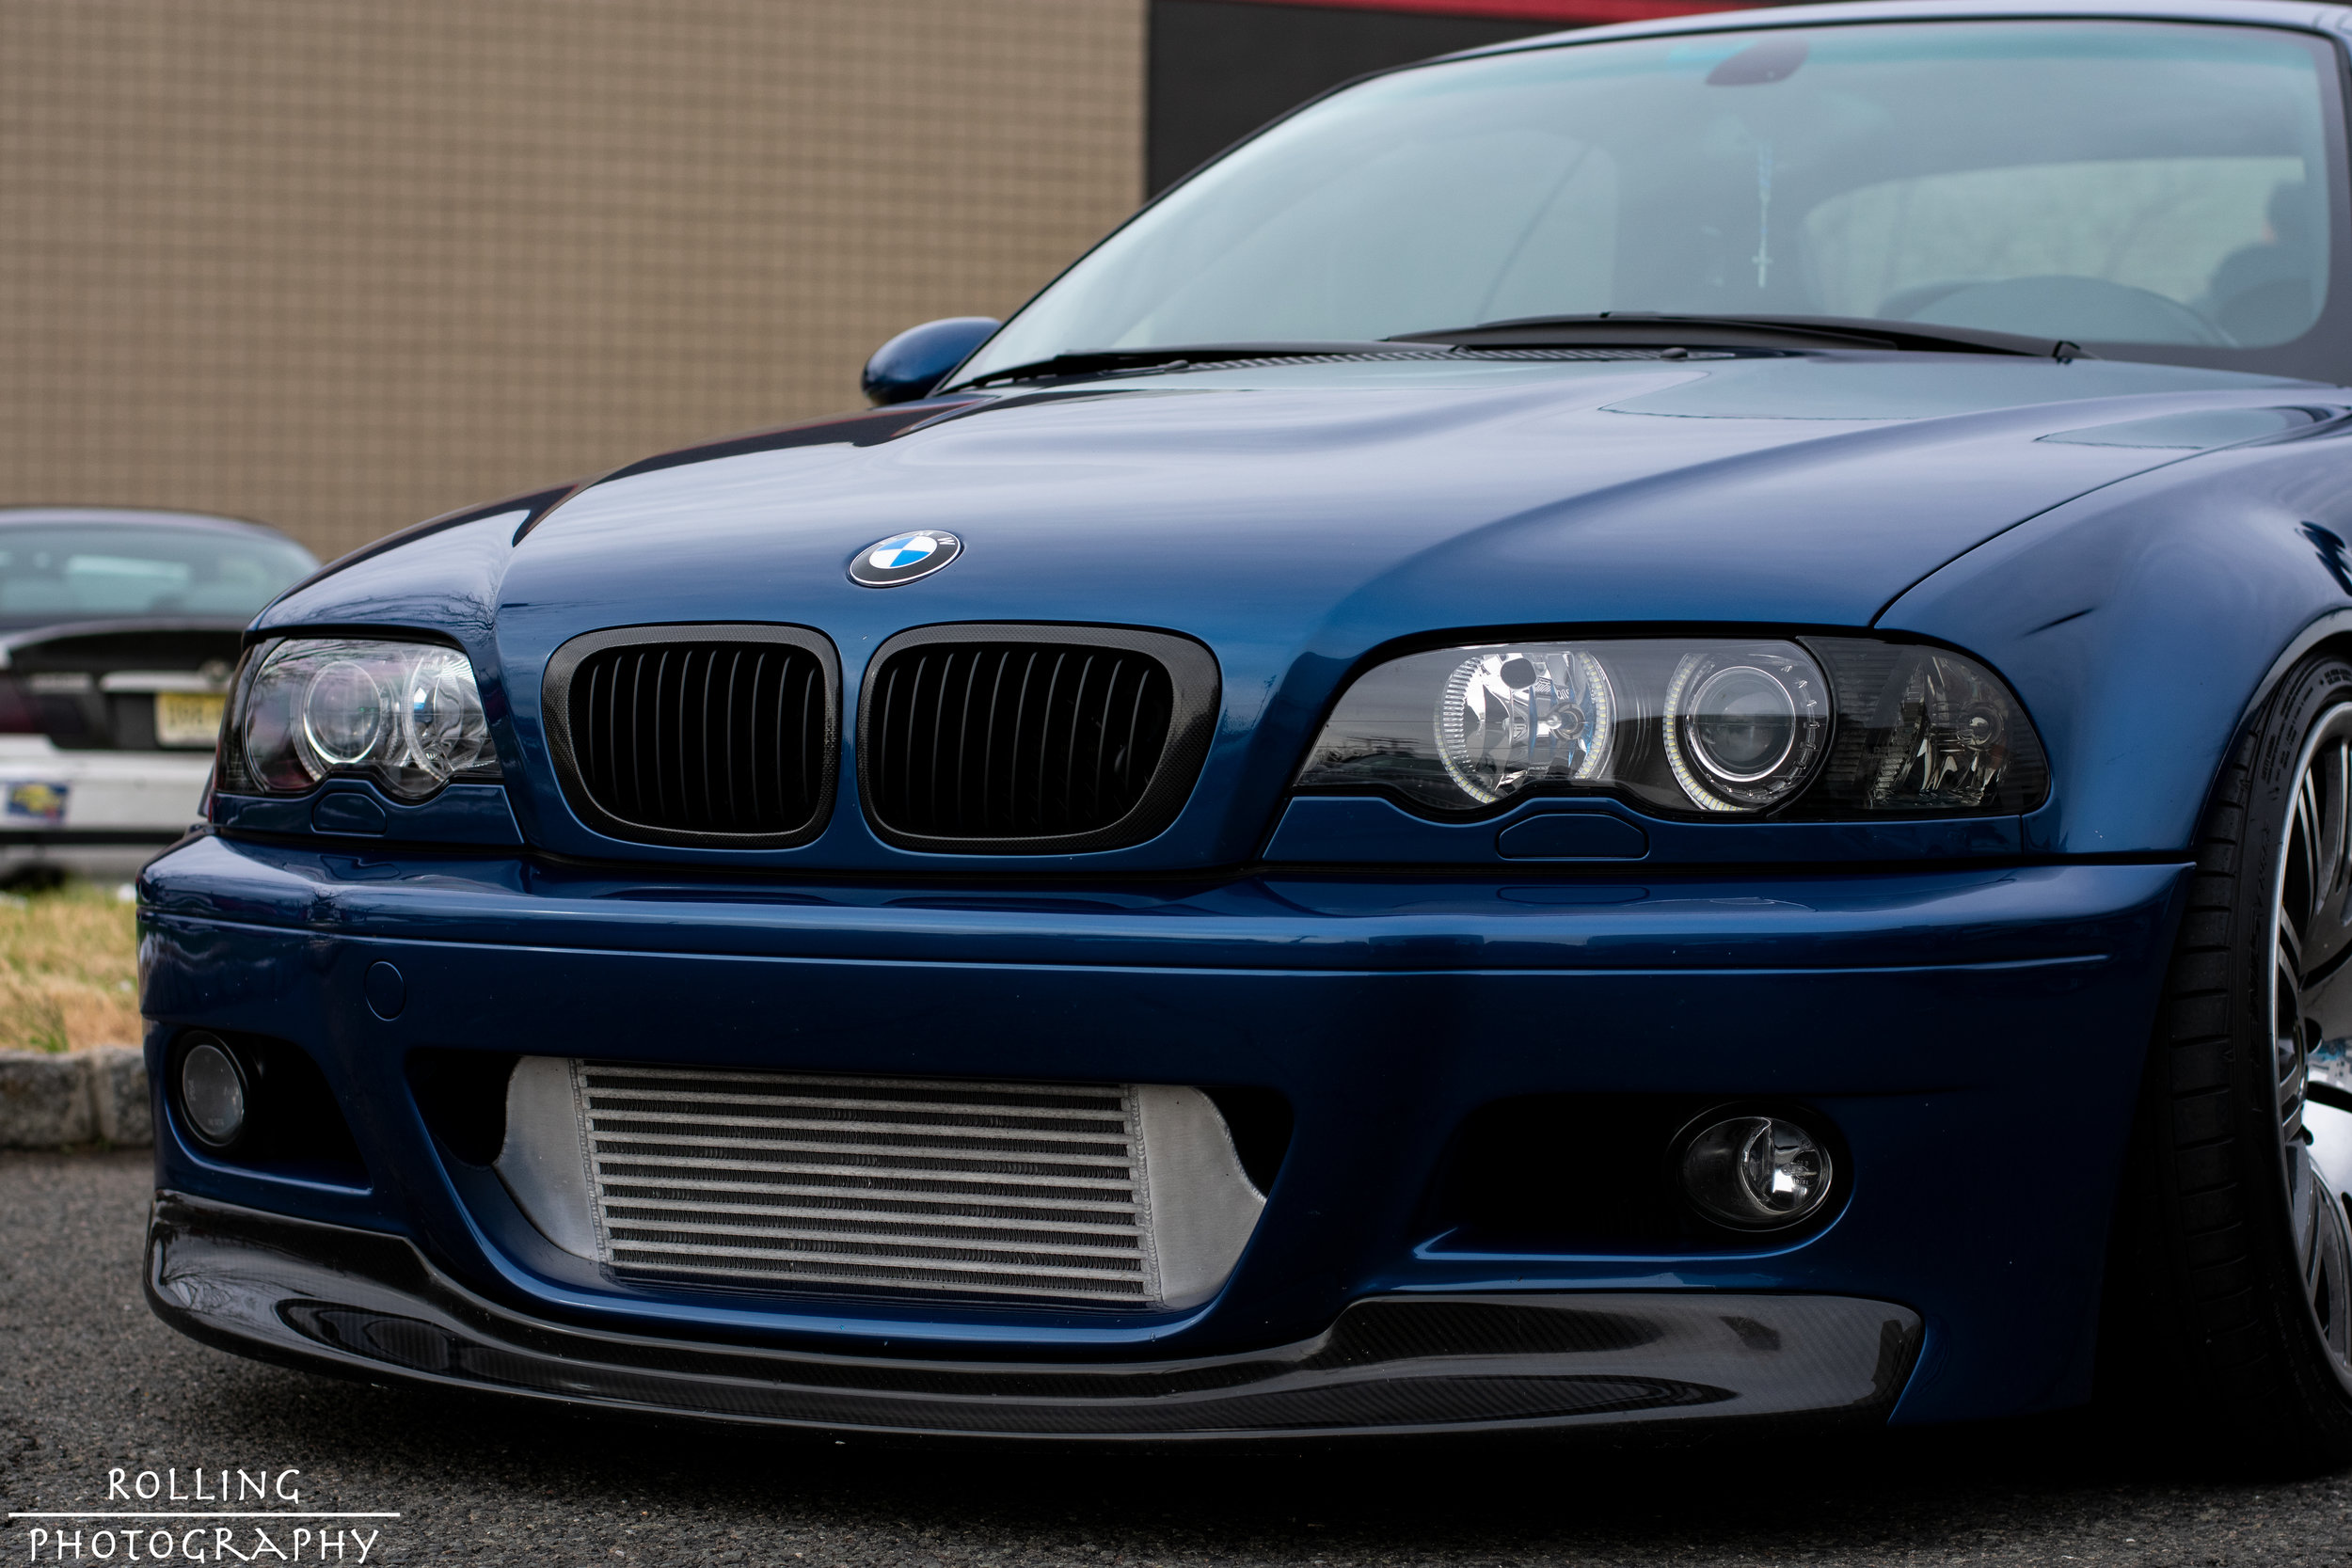 BMW M3 (E46) (Blue)  ISO 200, 50mm, f / 4.5 Shutter Speed 1/640